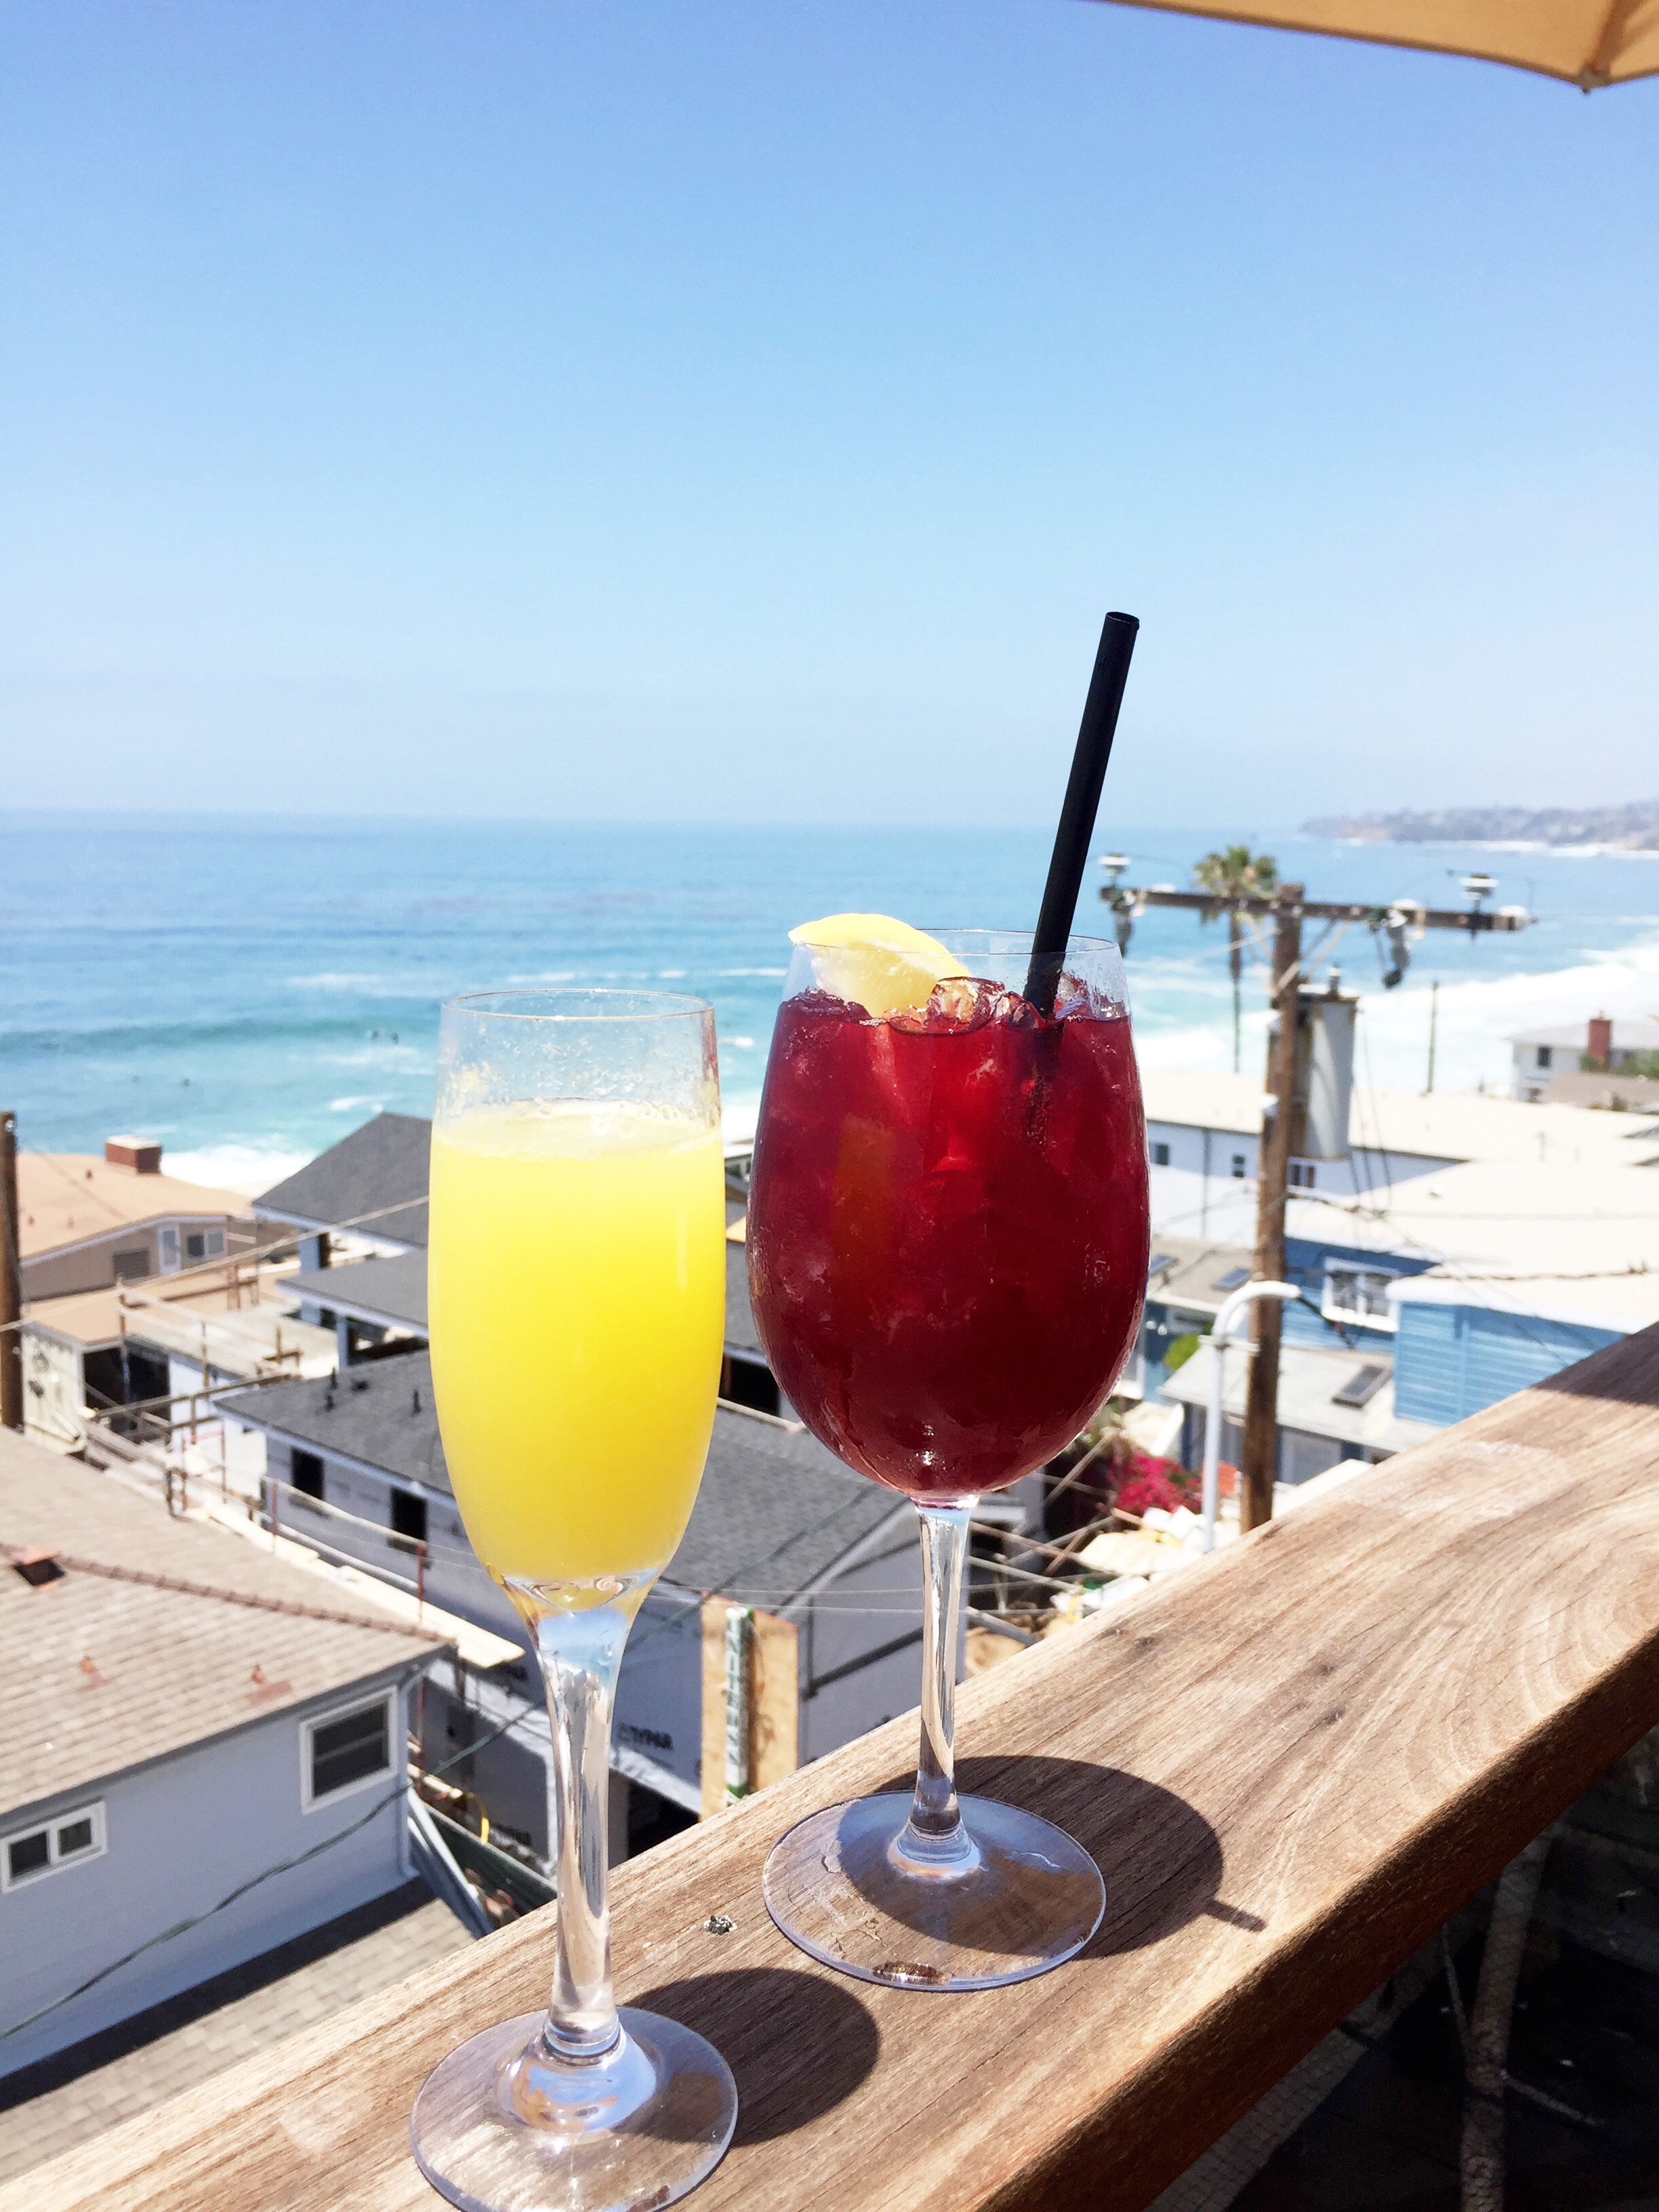 The Rooftop Lounge Laguna Beach review